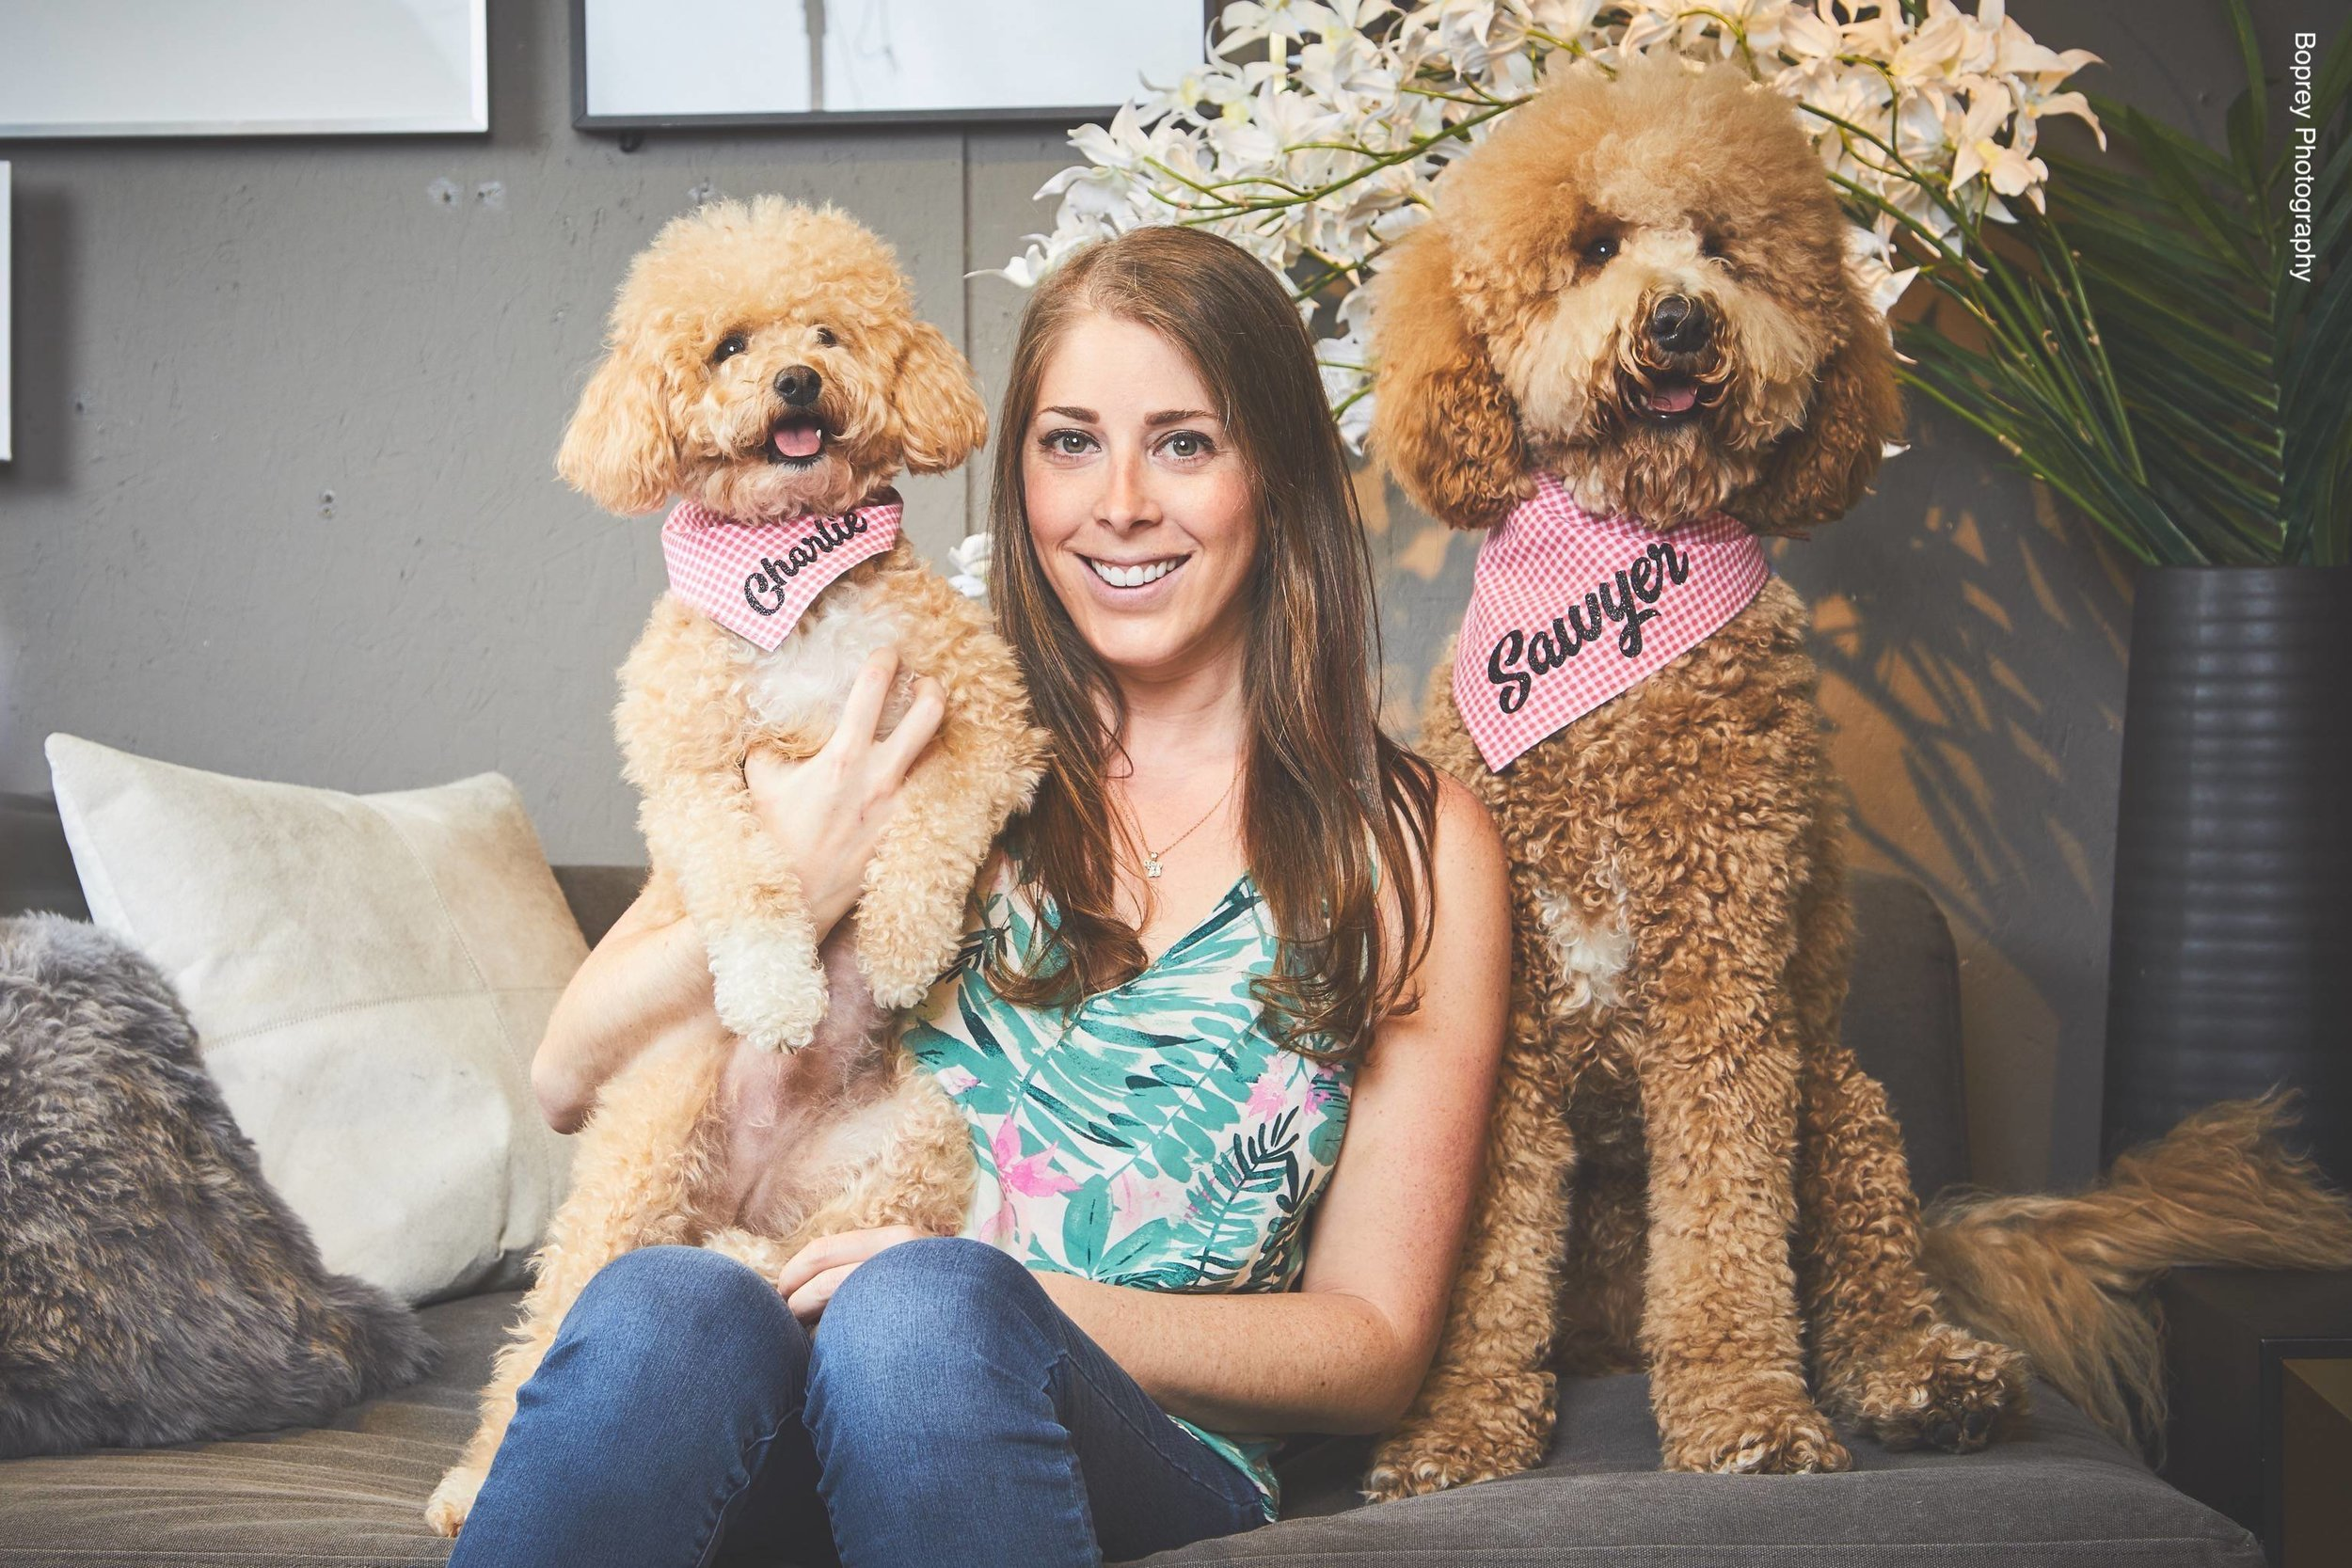 Paige with her girls Charlie and Sawyer, at CB2. Credit: Boprey Photography